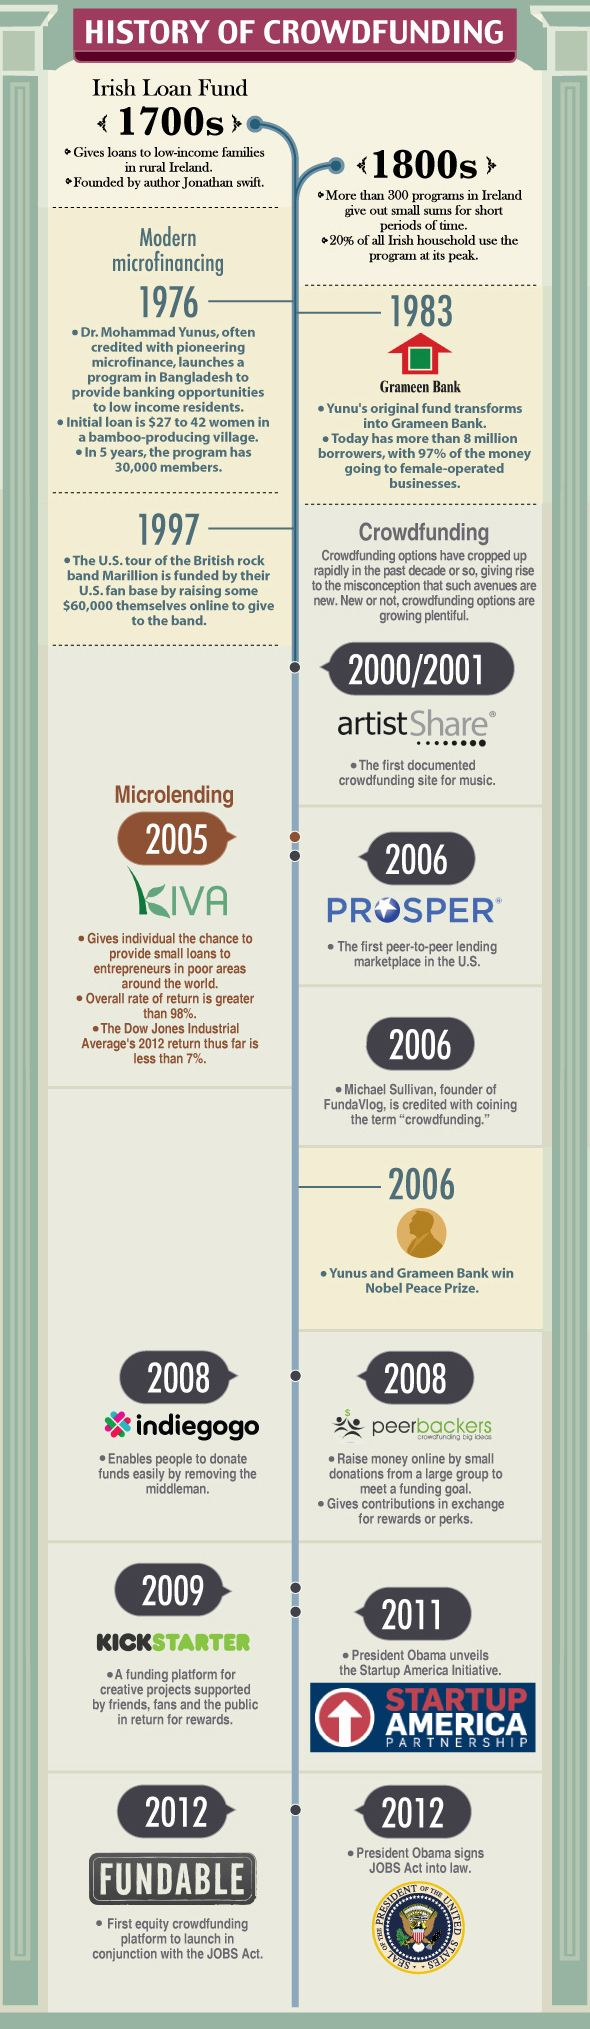 #Crowdfunding Infographic – The History of Crowdfunding | The Soho Loft